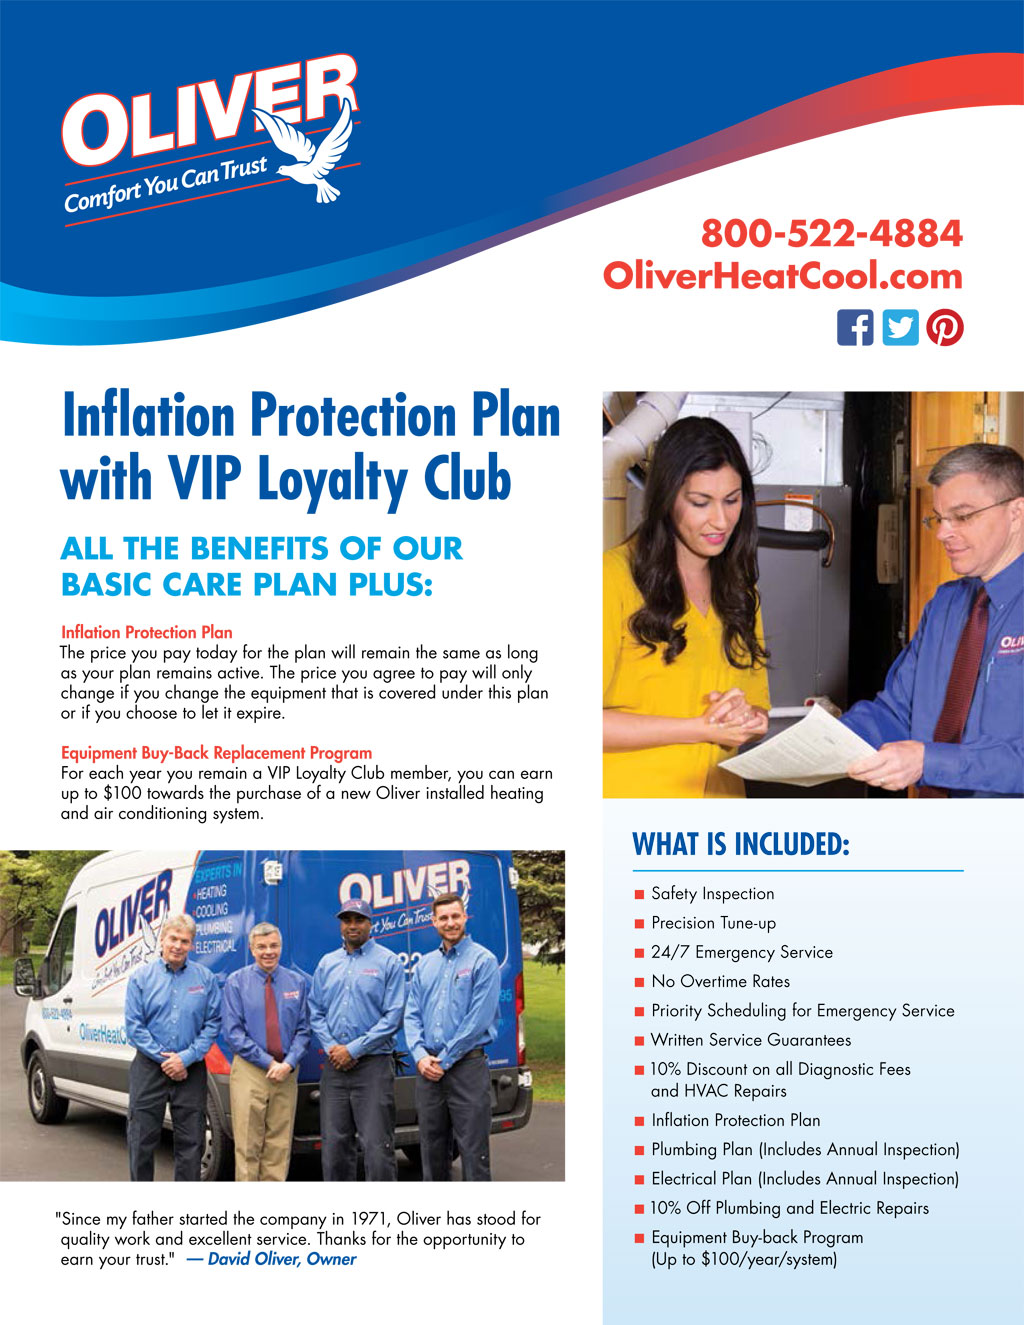 Inflation Protection Plan